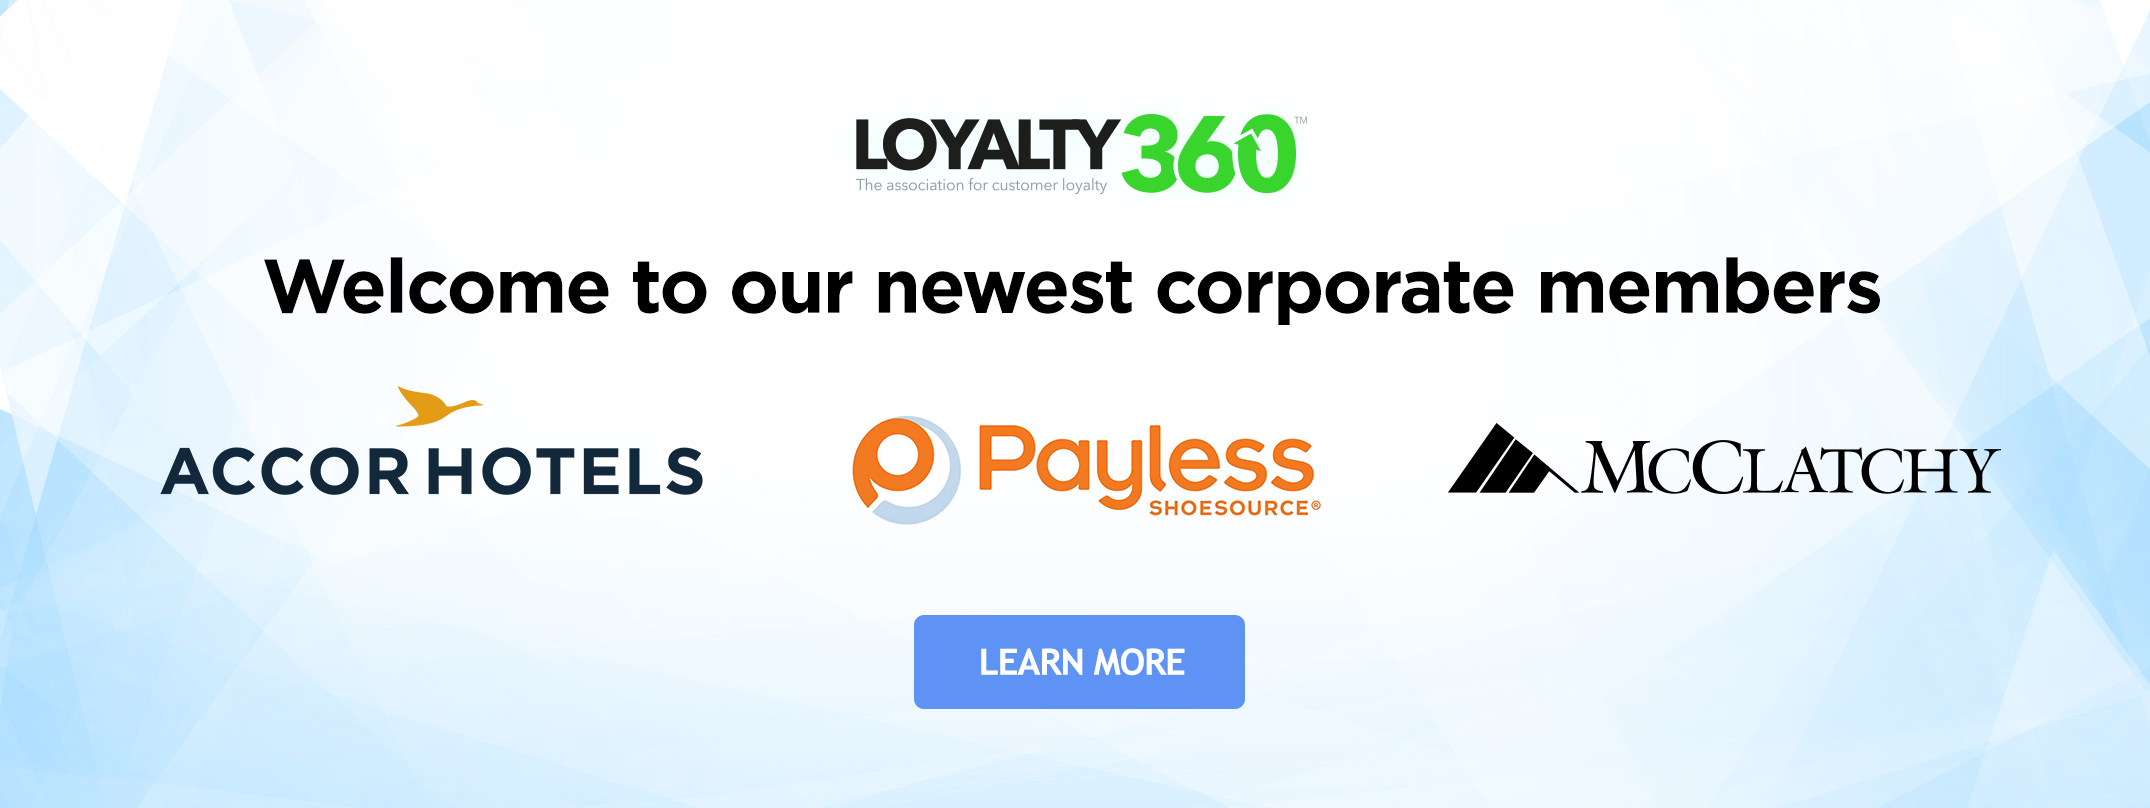 New-Member-welcome_bw_accorhotel_payless_mcclatchy